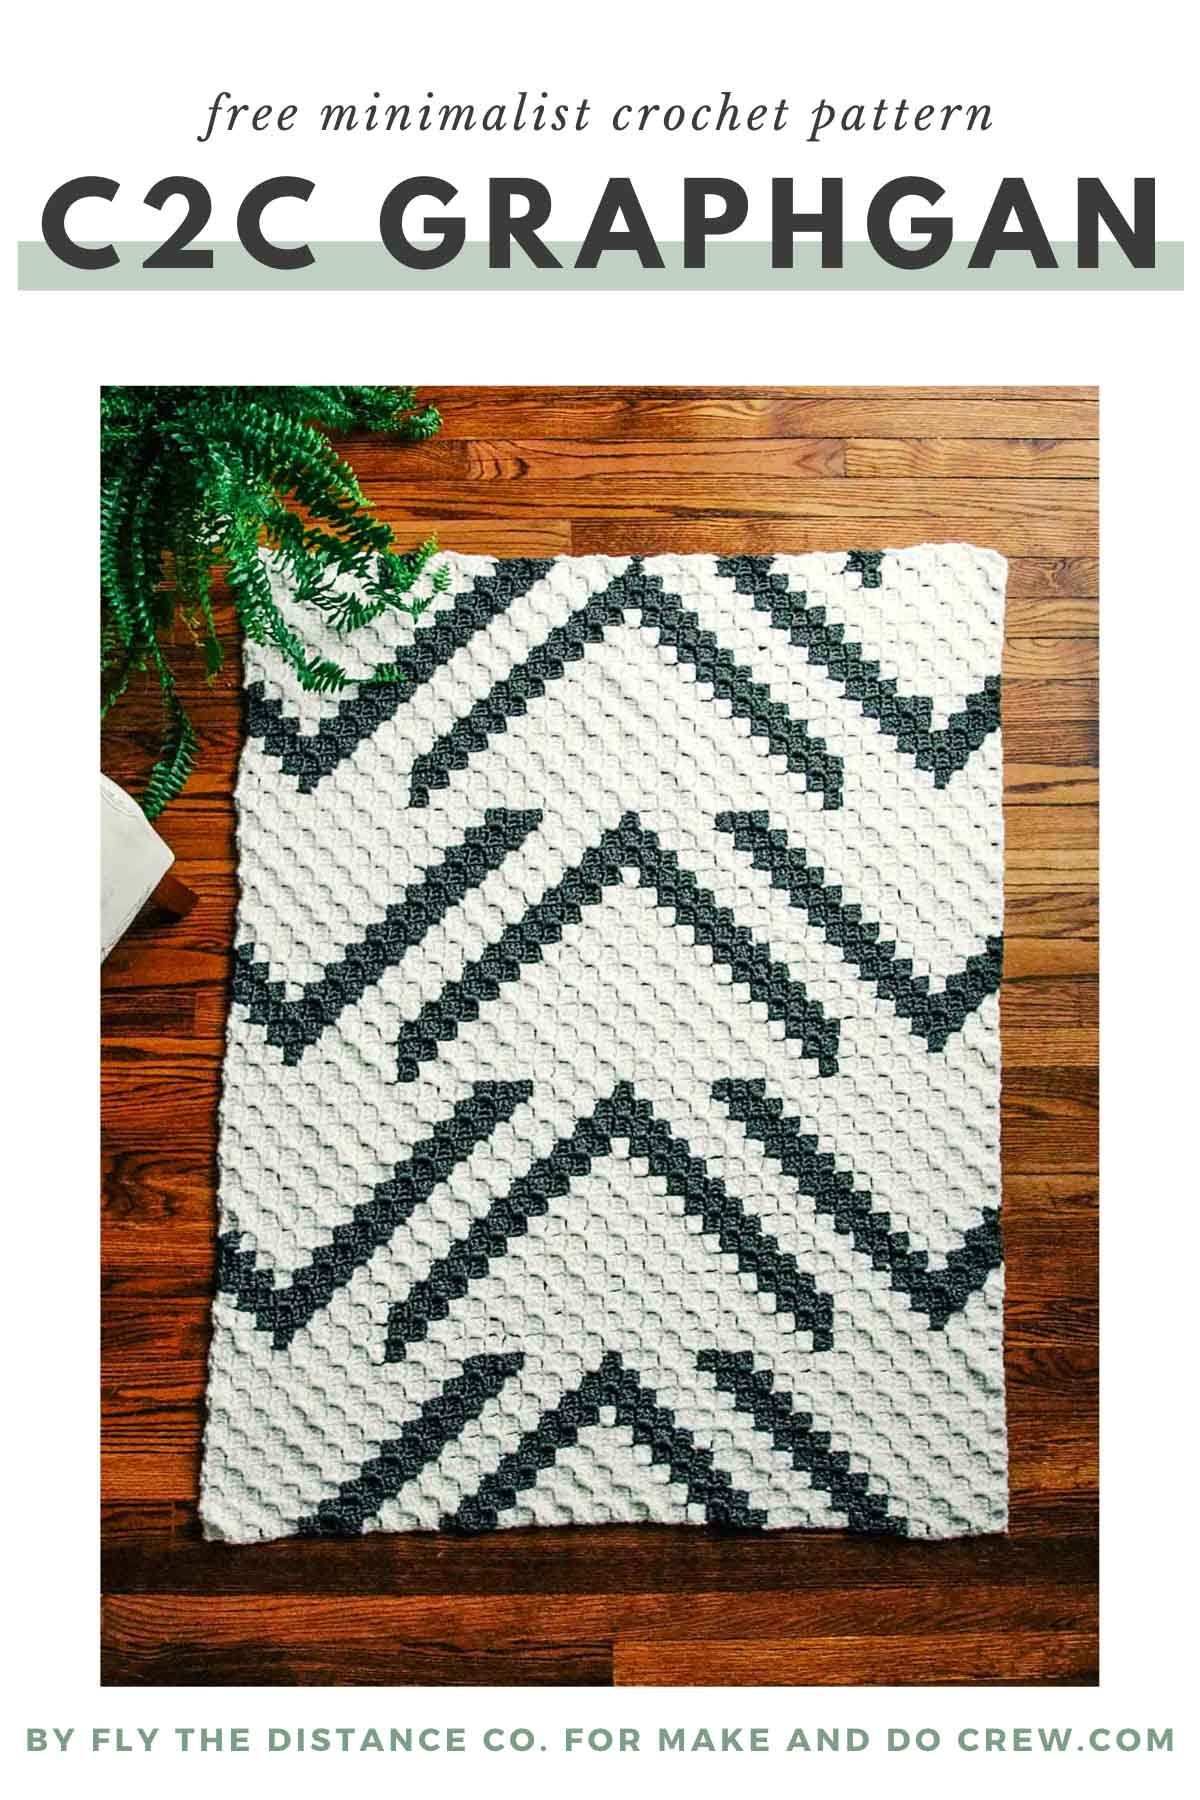 A modern c2c crochet blanket laying on a wood floor. The blanket has stylish pattern of arrows.